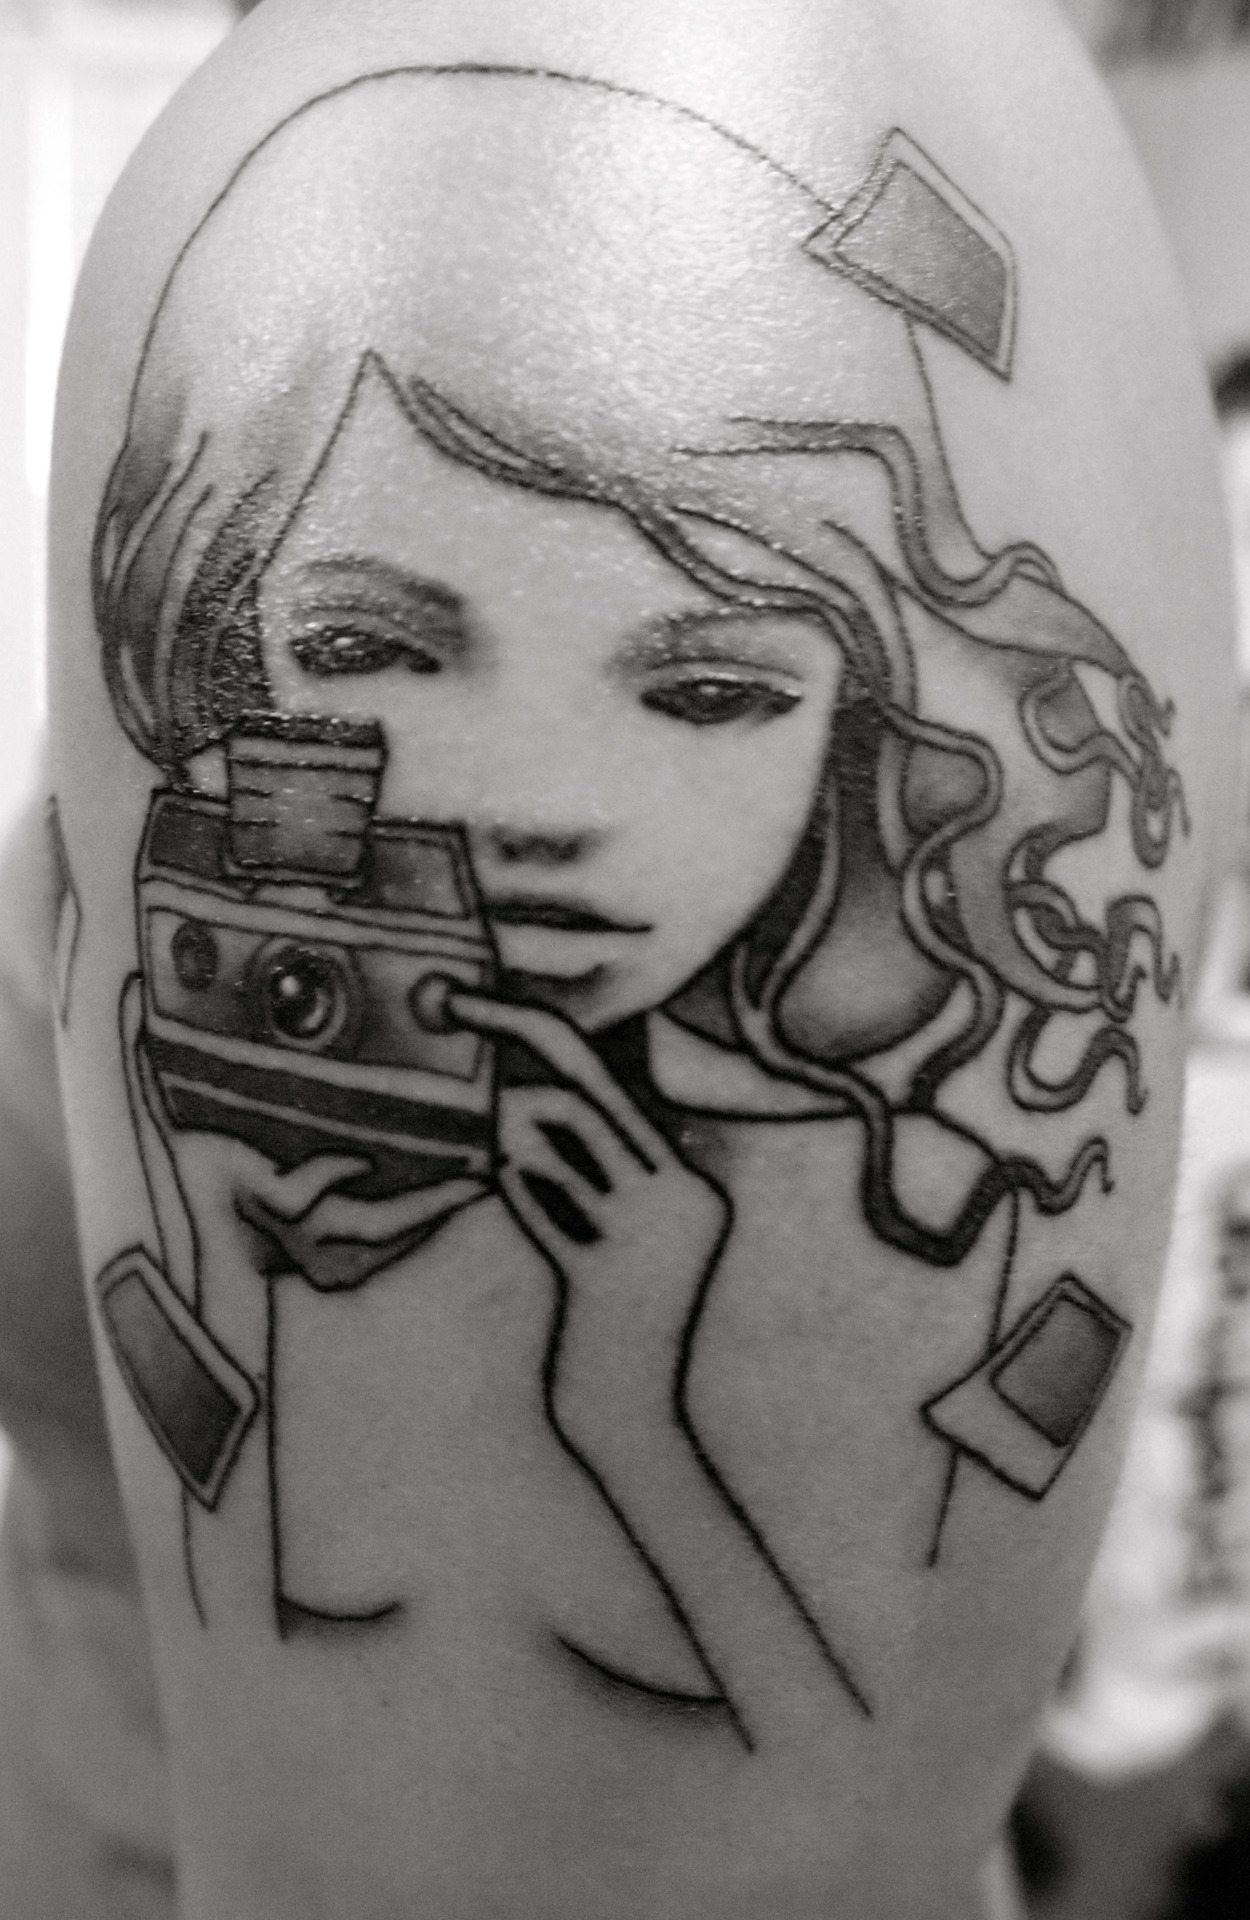 A tattoo of one of Audrey Kawasaki's pieces depicting a girl with a polaroid. Done by Jess V @ Sacred Tattoos in New York, NY.